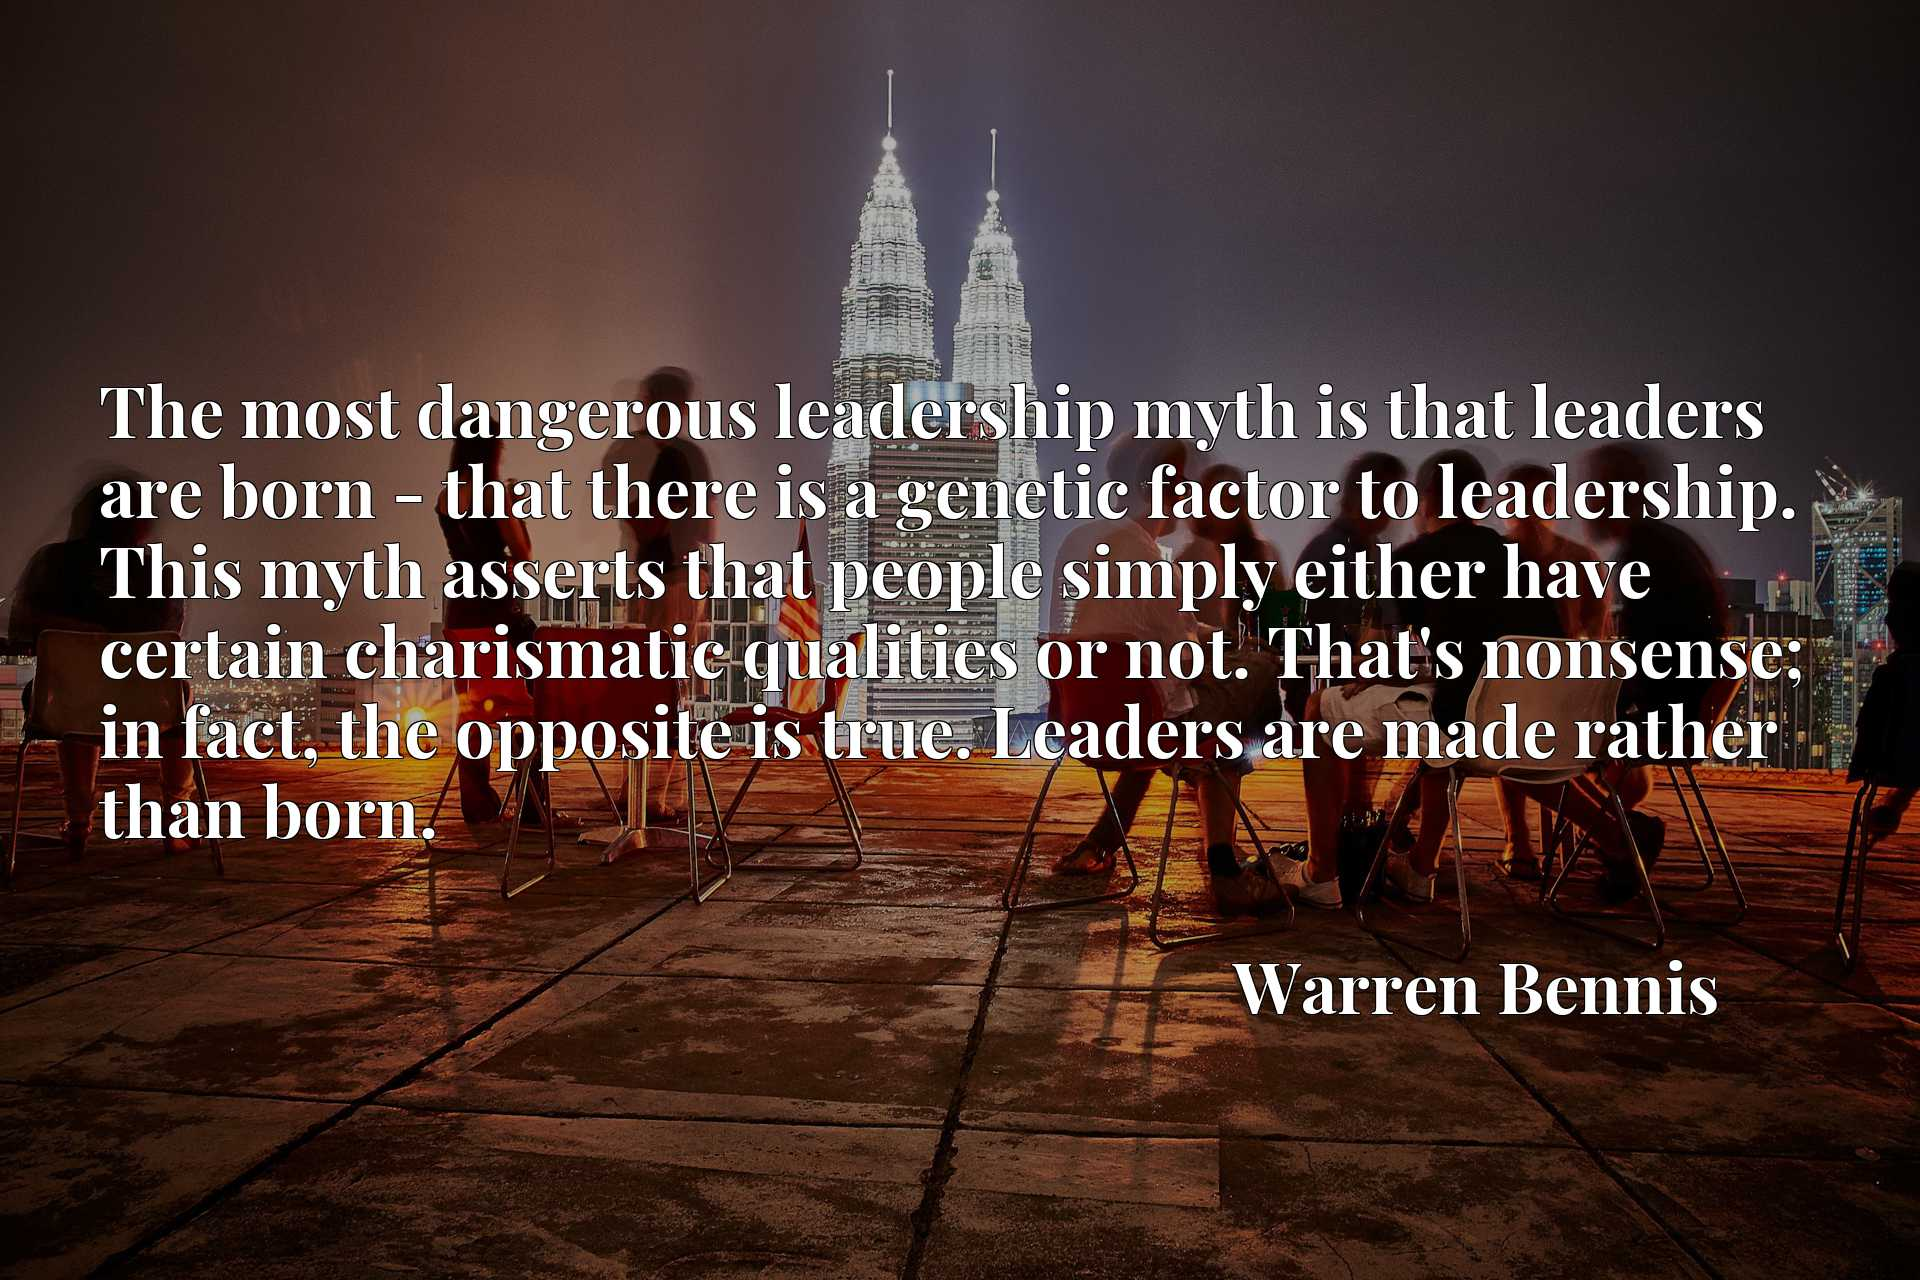 The most dangerous leadership myth is that leaders are born - that there is a genetic factor to leadership. This myth asserts that people simply either have certain charismatic qualities or not. That's nonsense; in fact, the opposite is true. Leaders are made rather than born.